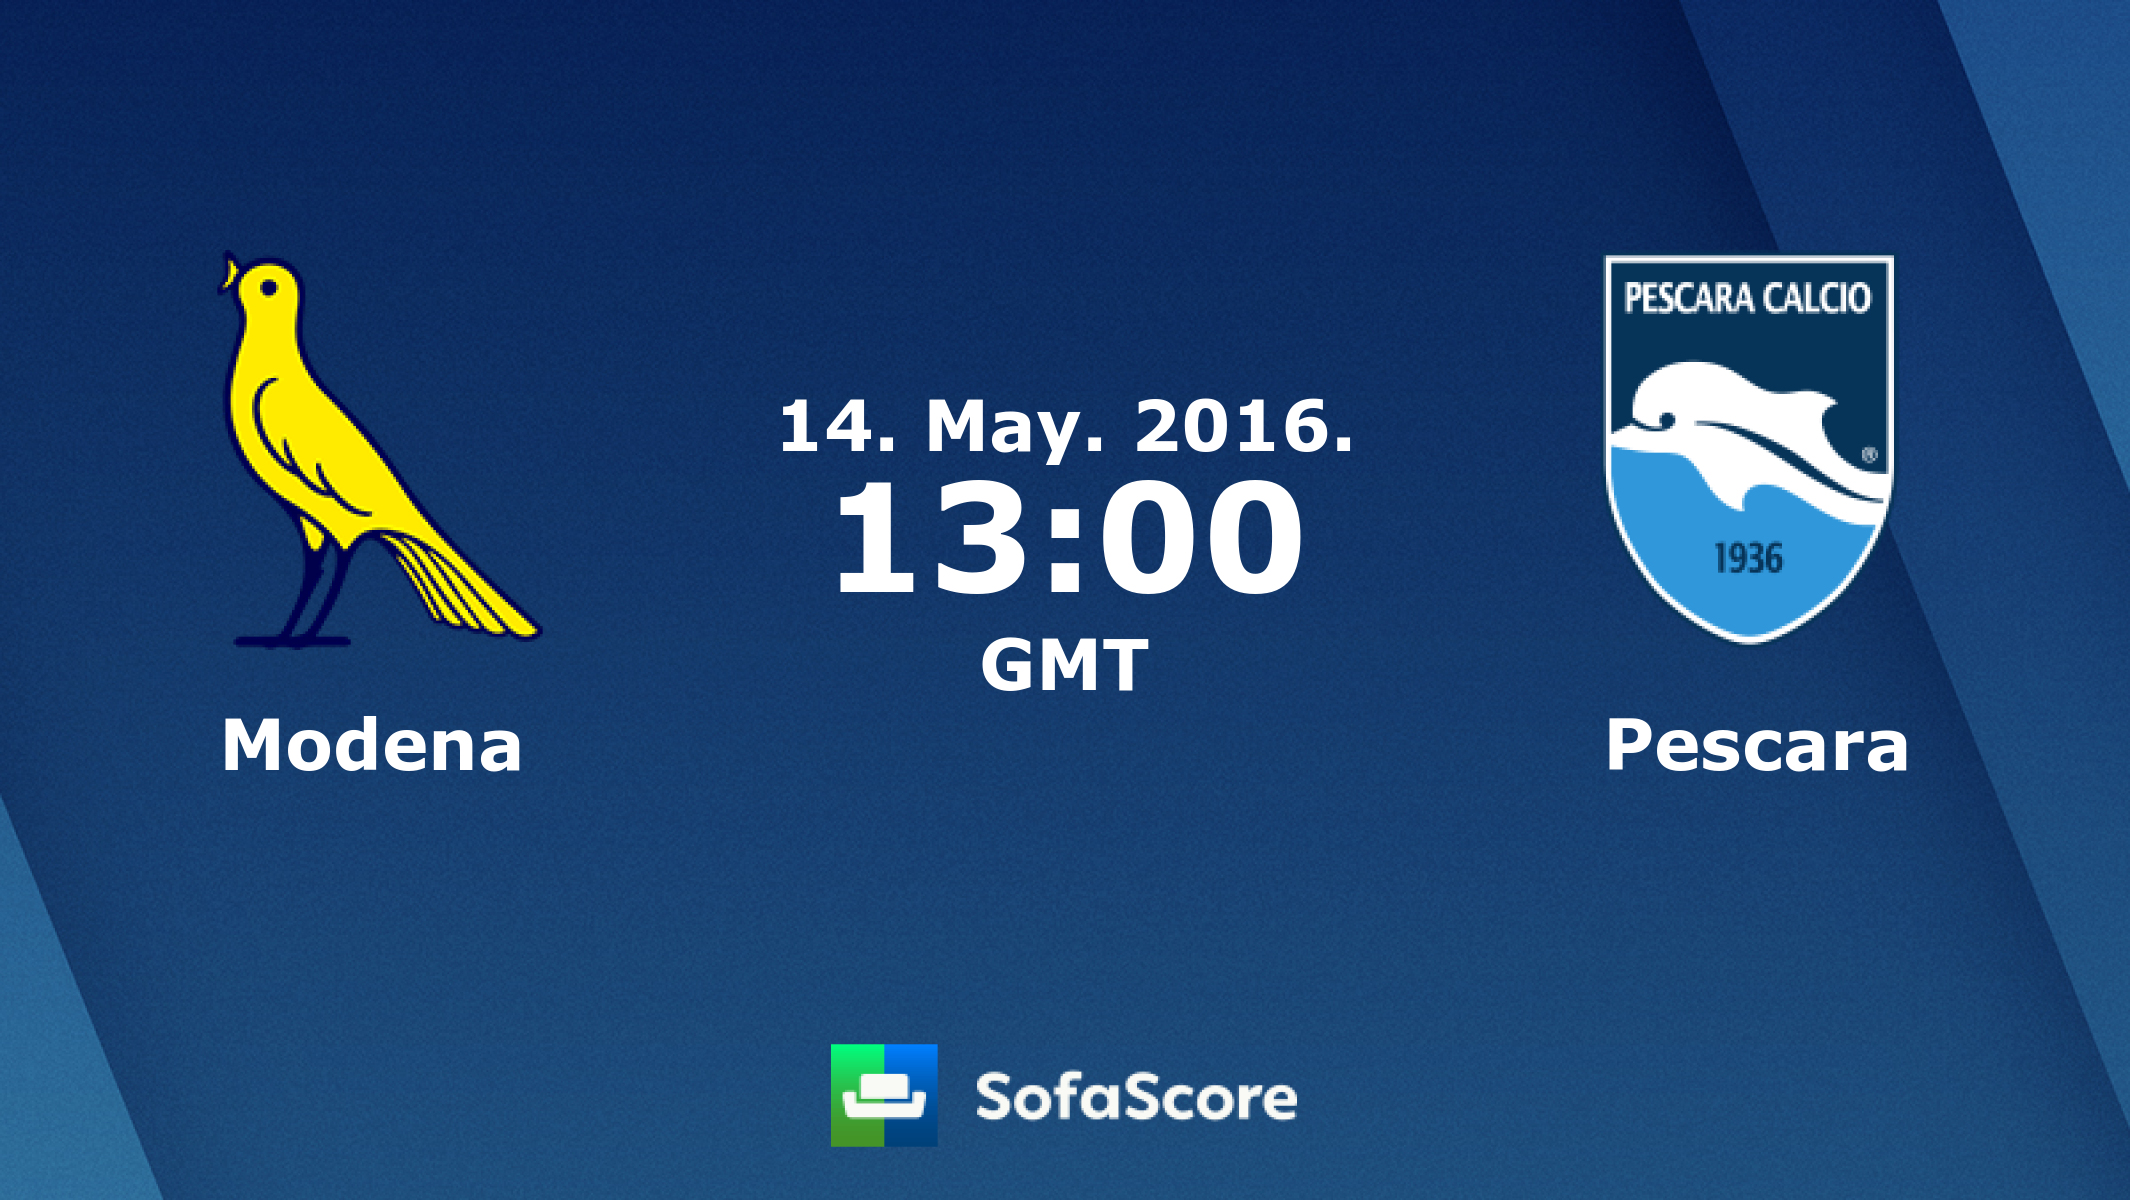 Pescara vs modena betting preview nfl cryptocurrency arbitrage fund class